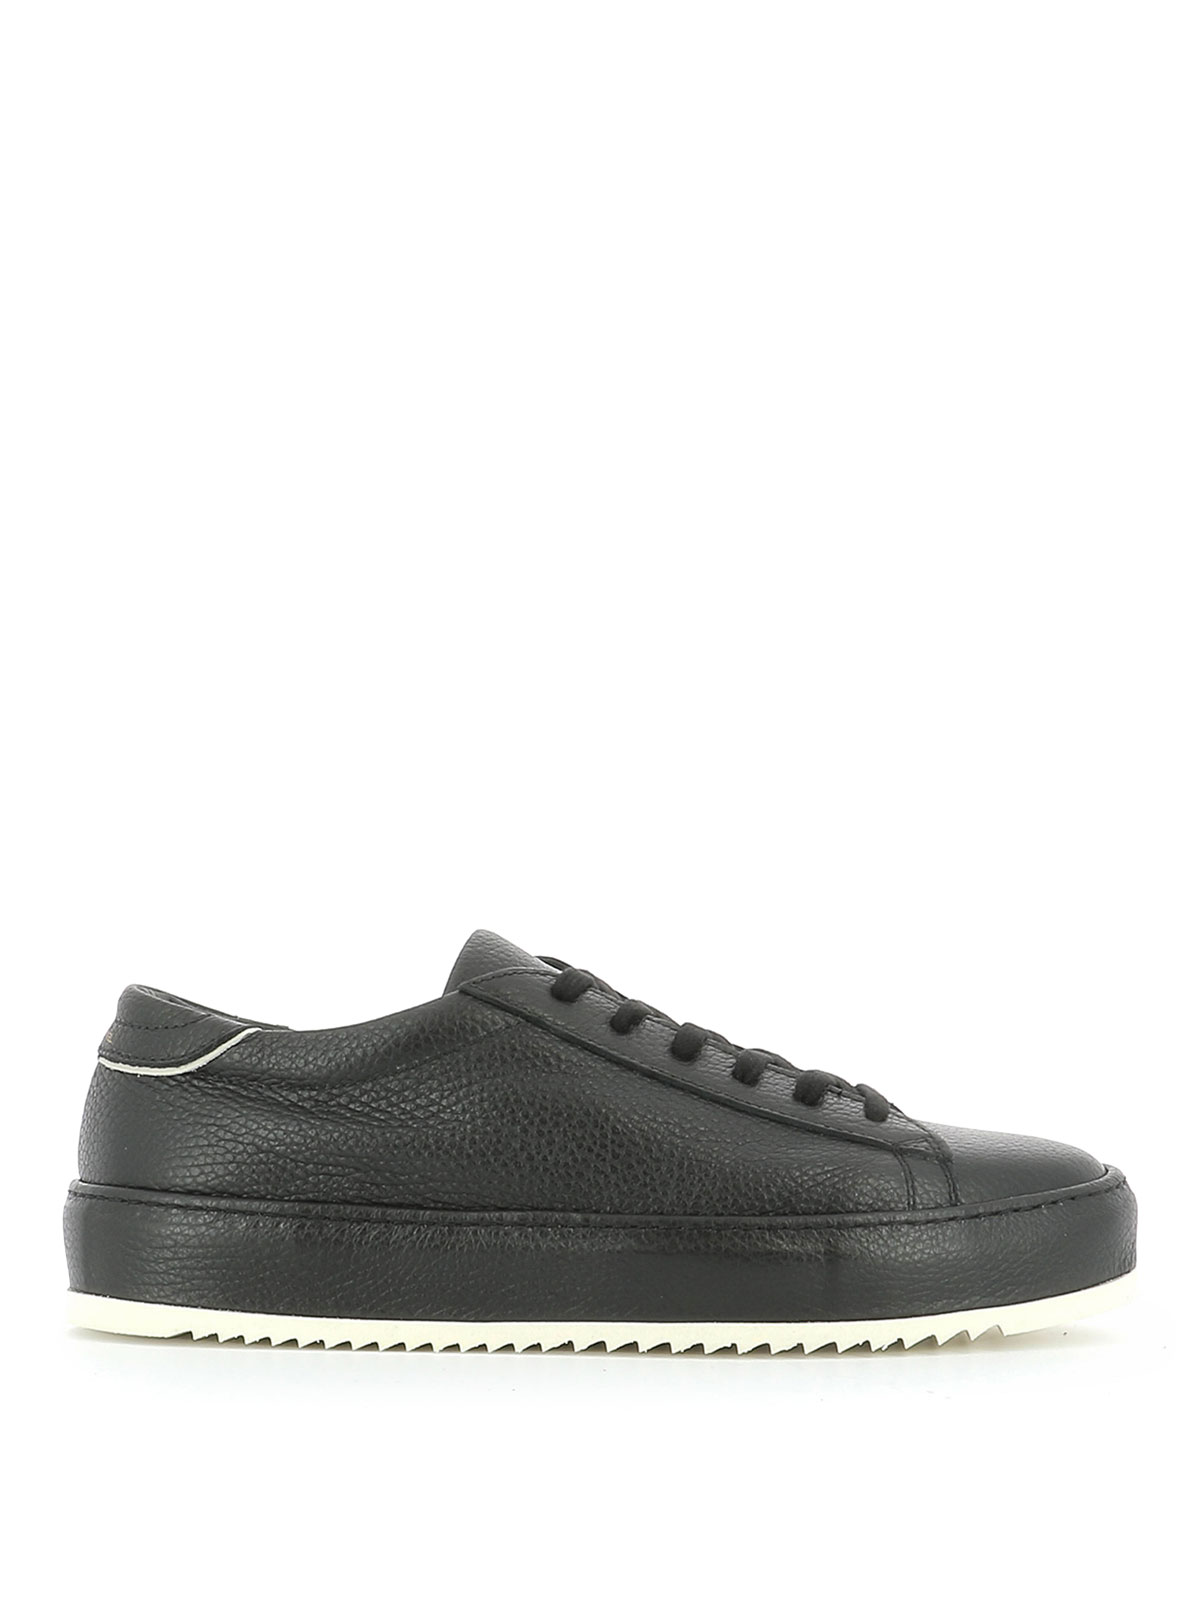 grained leather sneakers by philippe model trainers ikrix. Black Bedroom Furniture Sets. Home Design Ideas